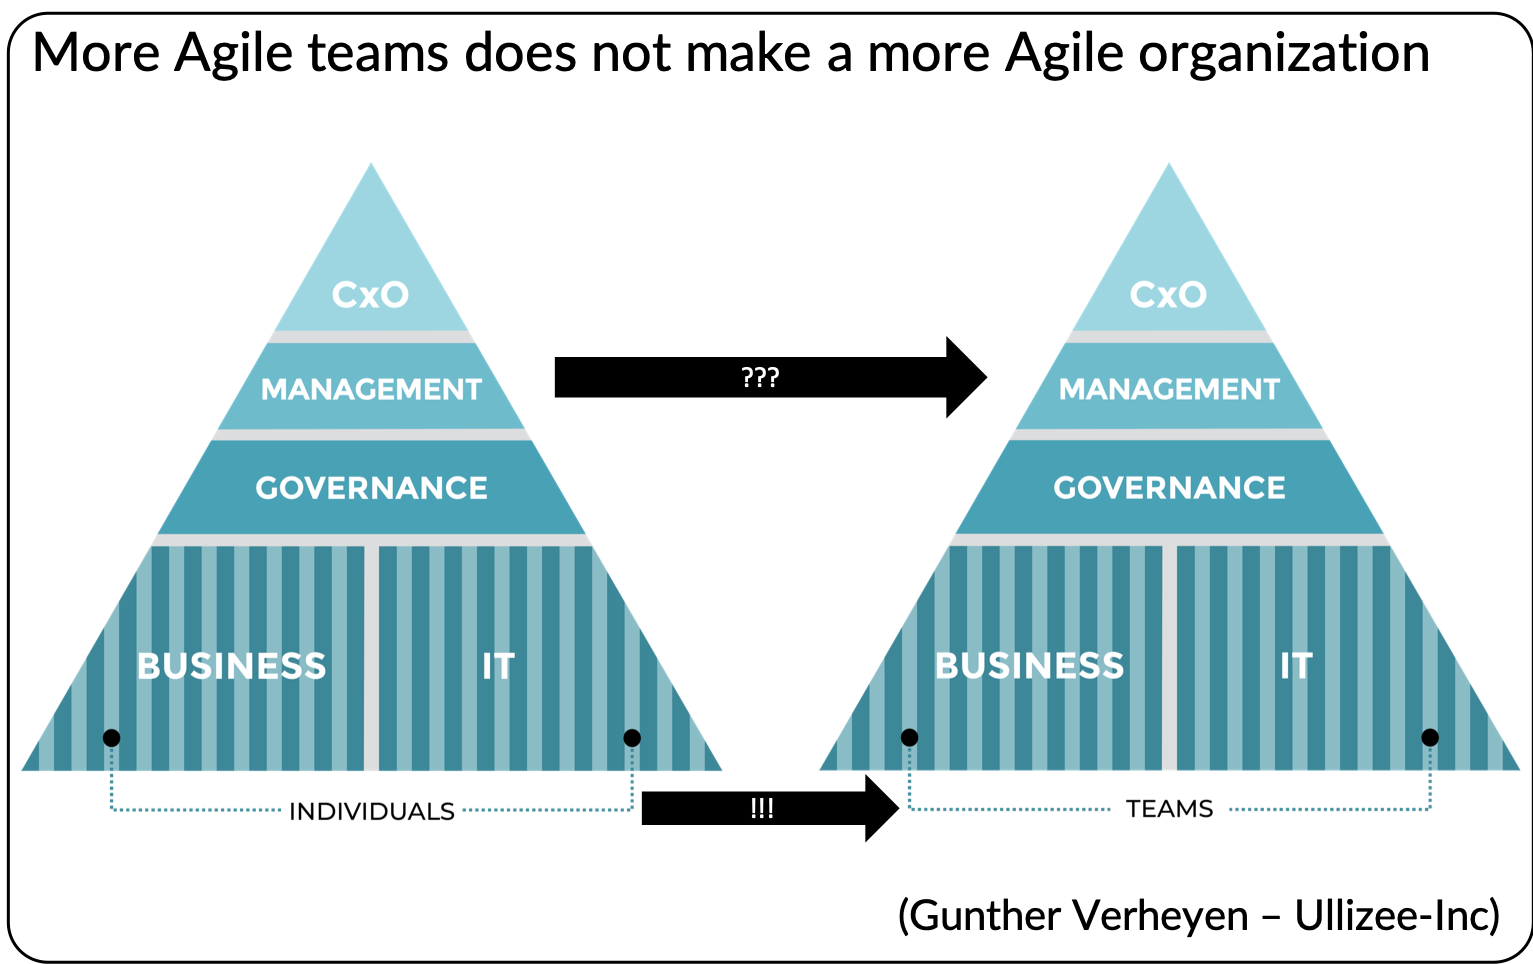 More Agile teams does not make a more Agile organization